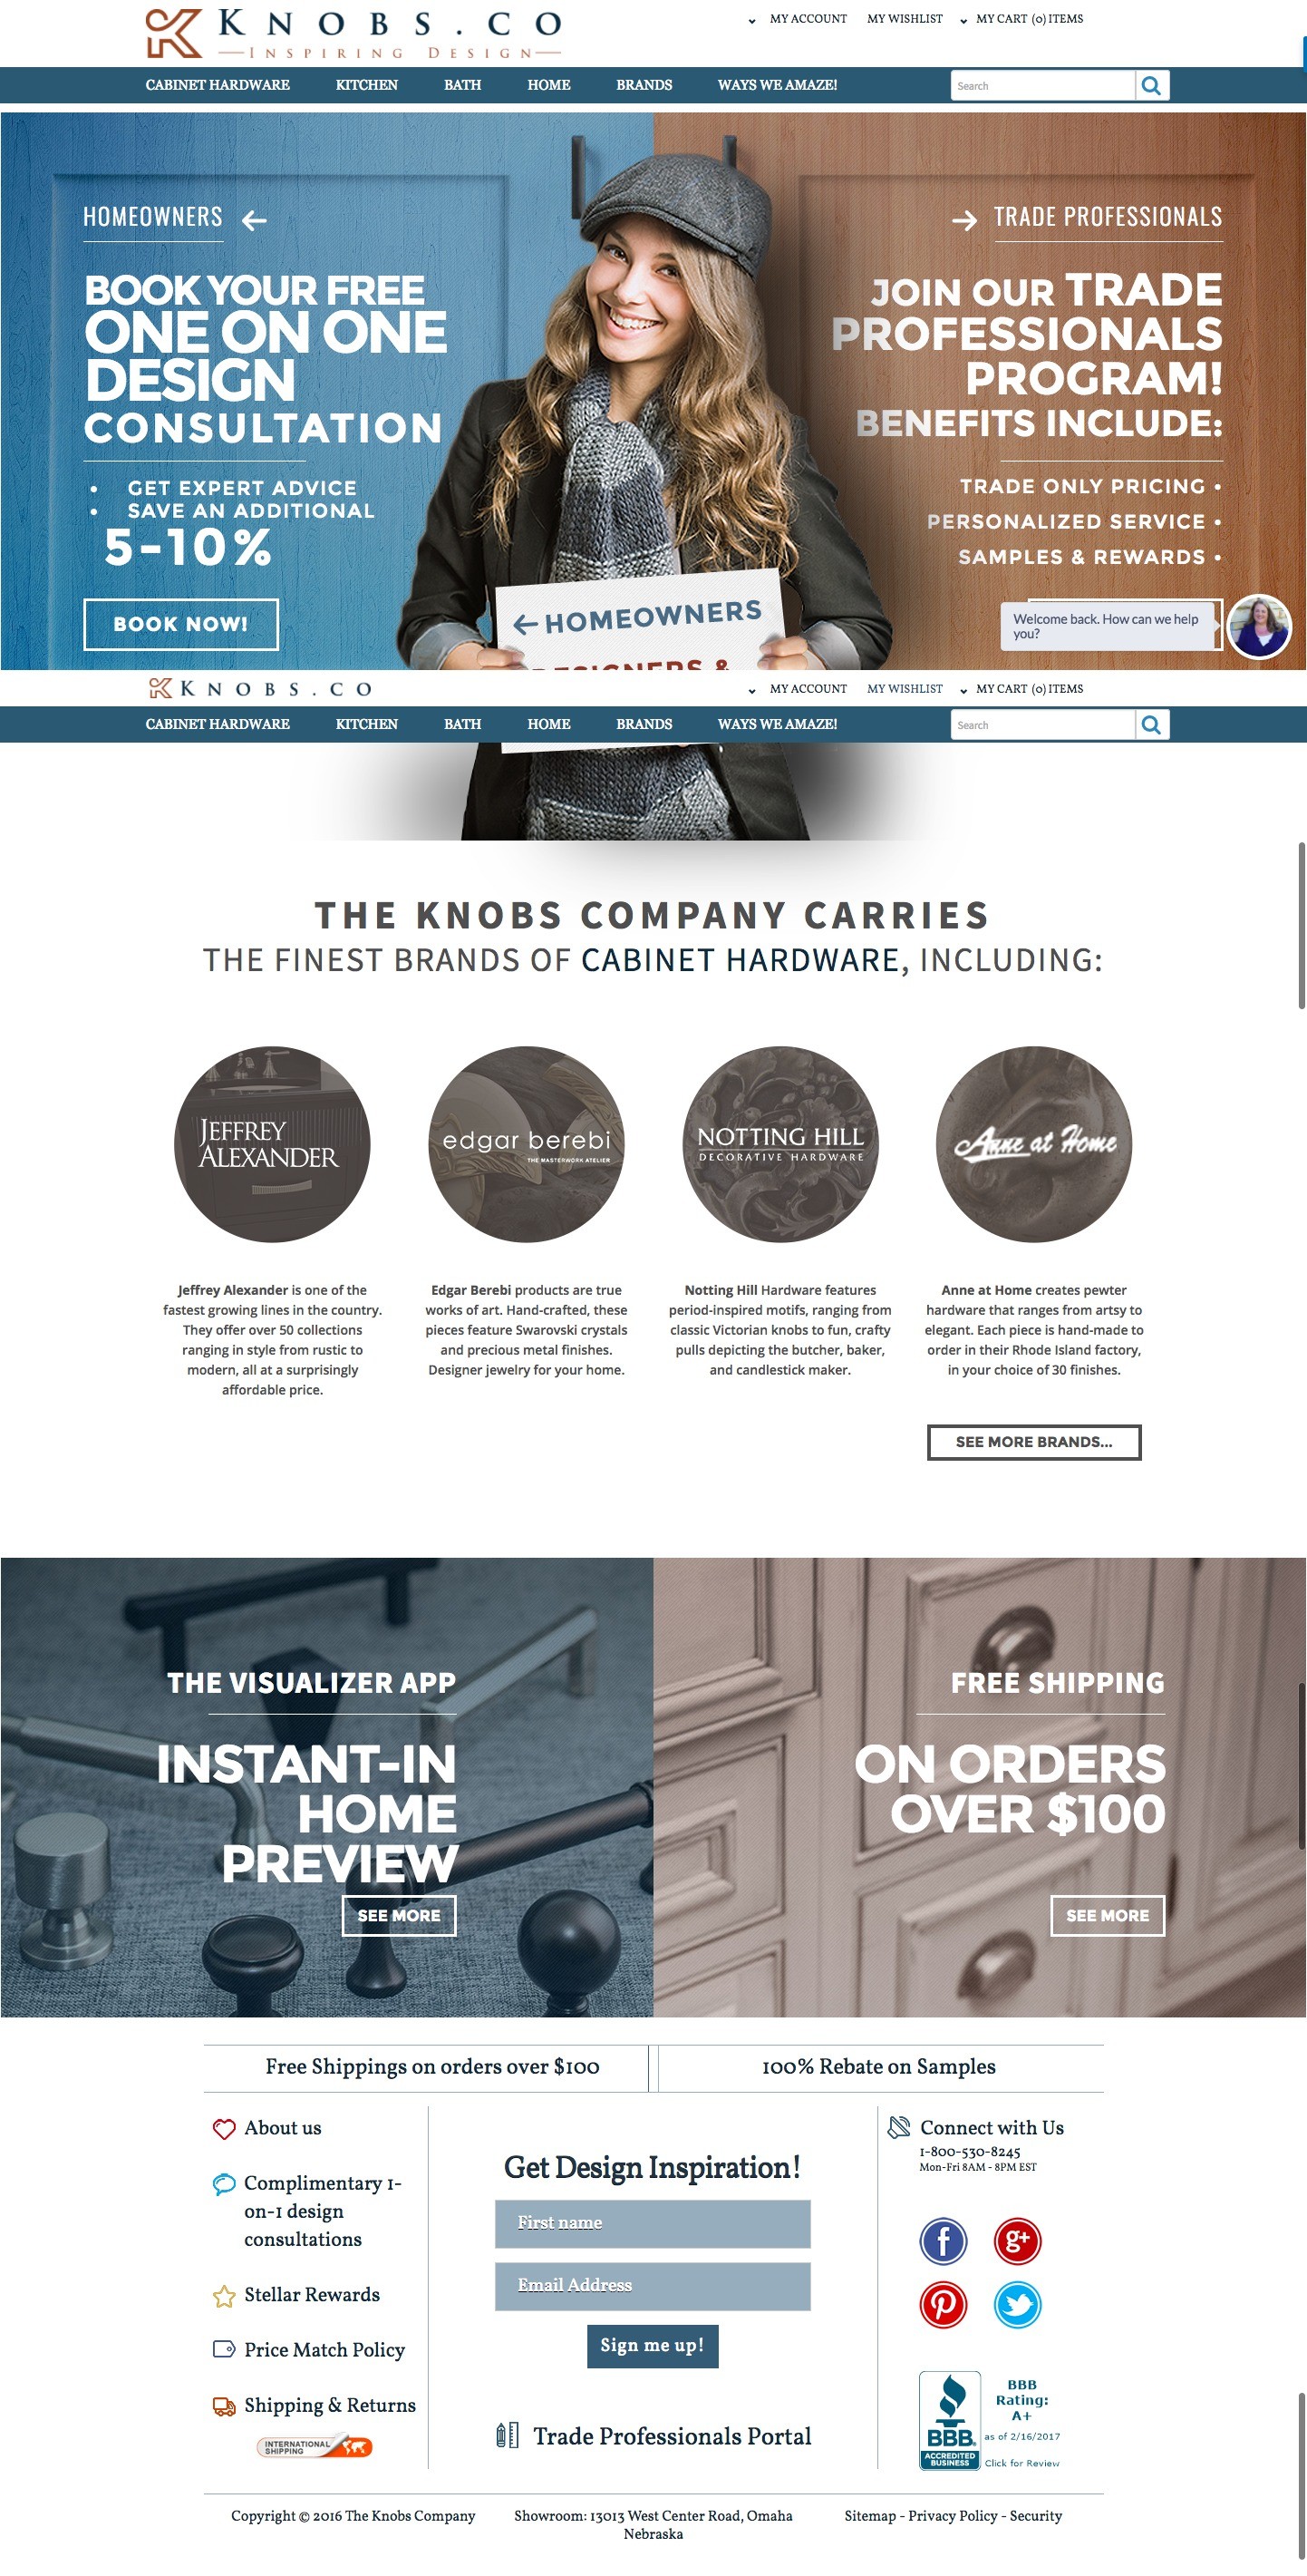 visual-merchandising-the-knobs-co